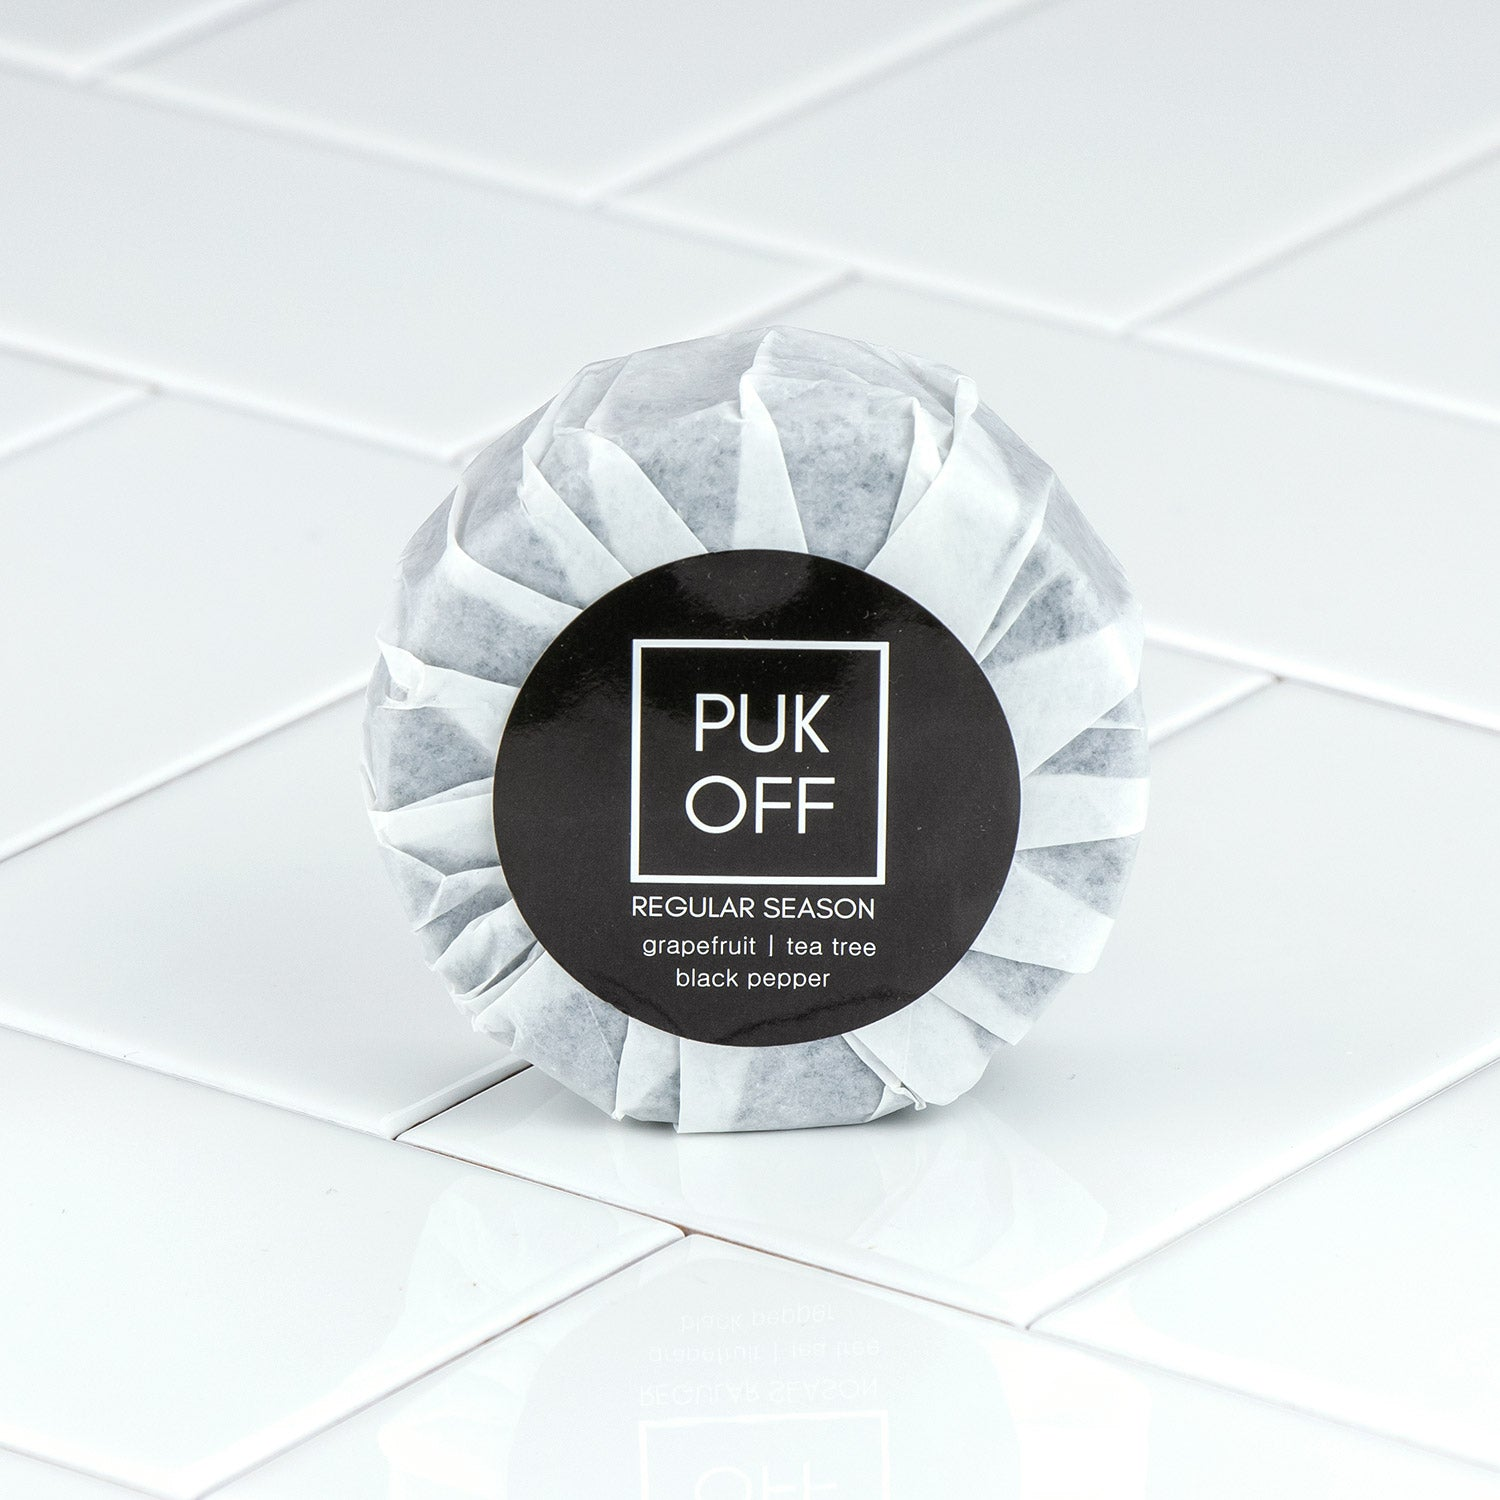 Puk Off 'Regular Season' Soap